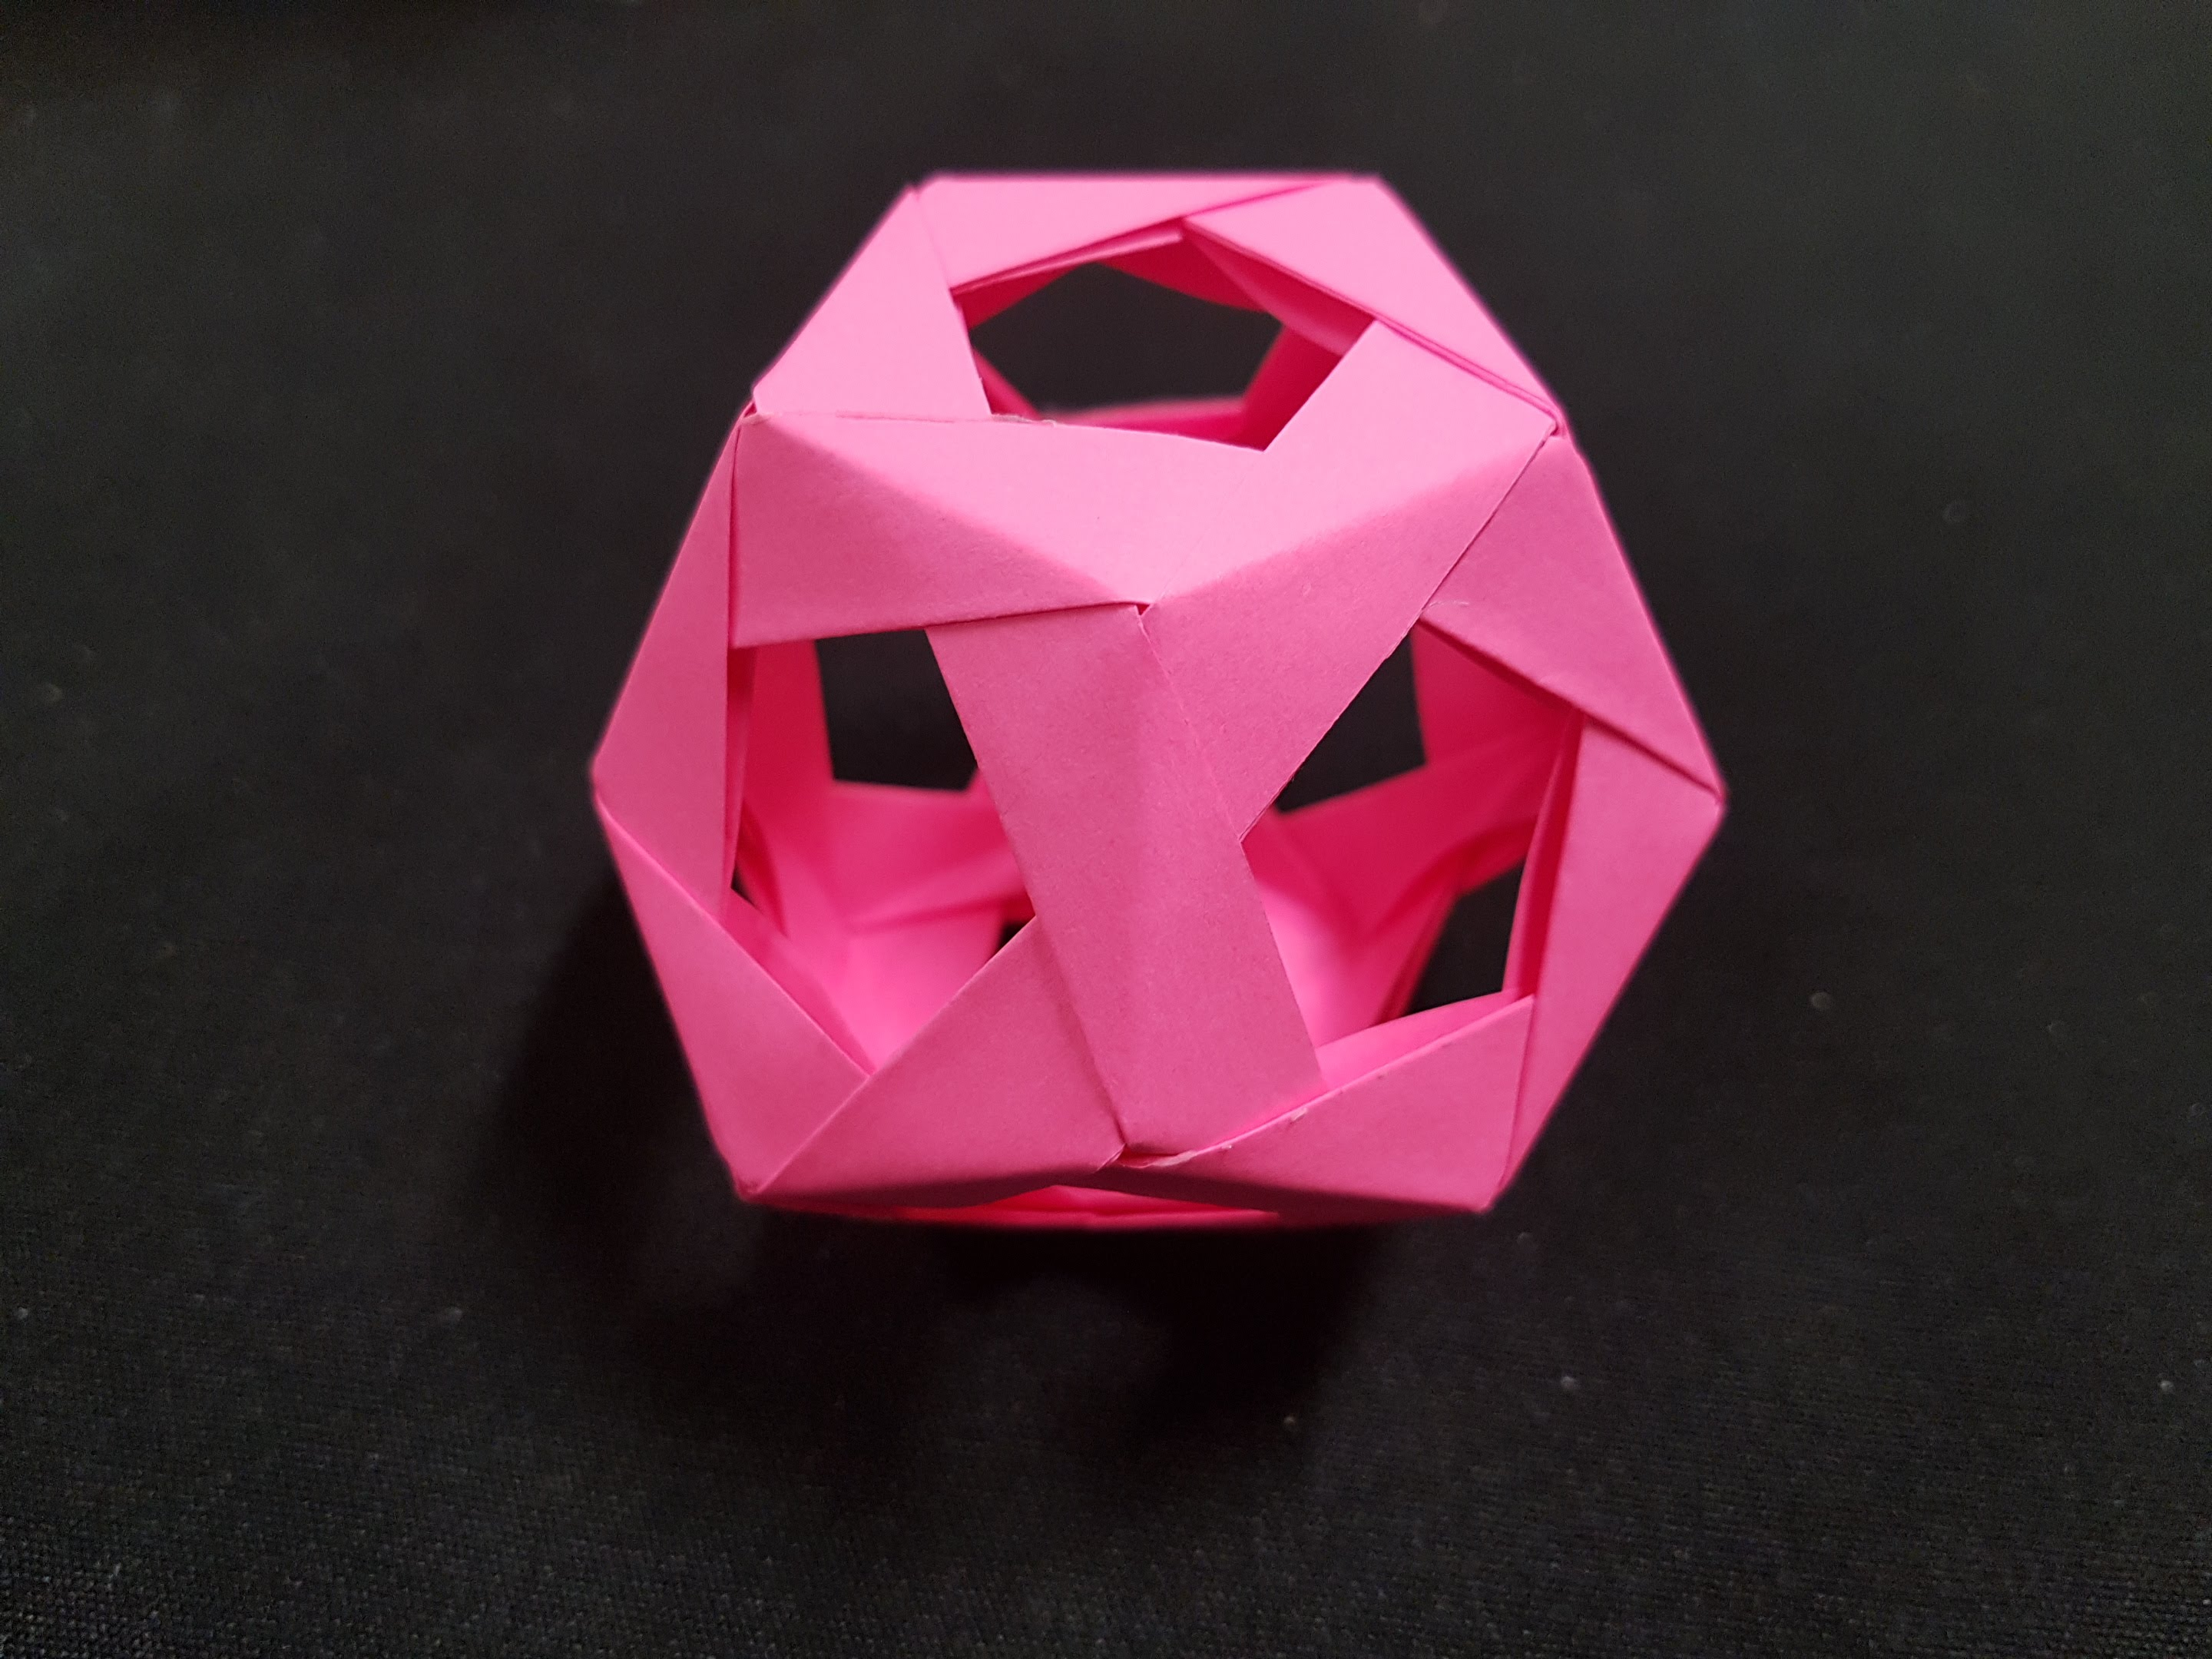 Pink dodecahedron made from post-it notes